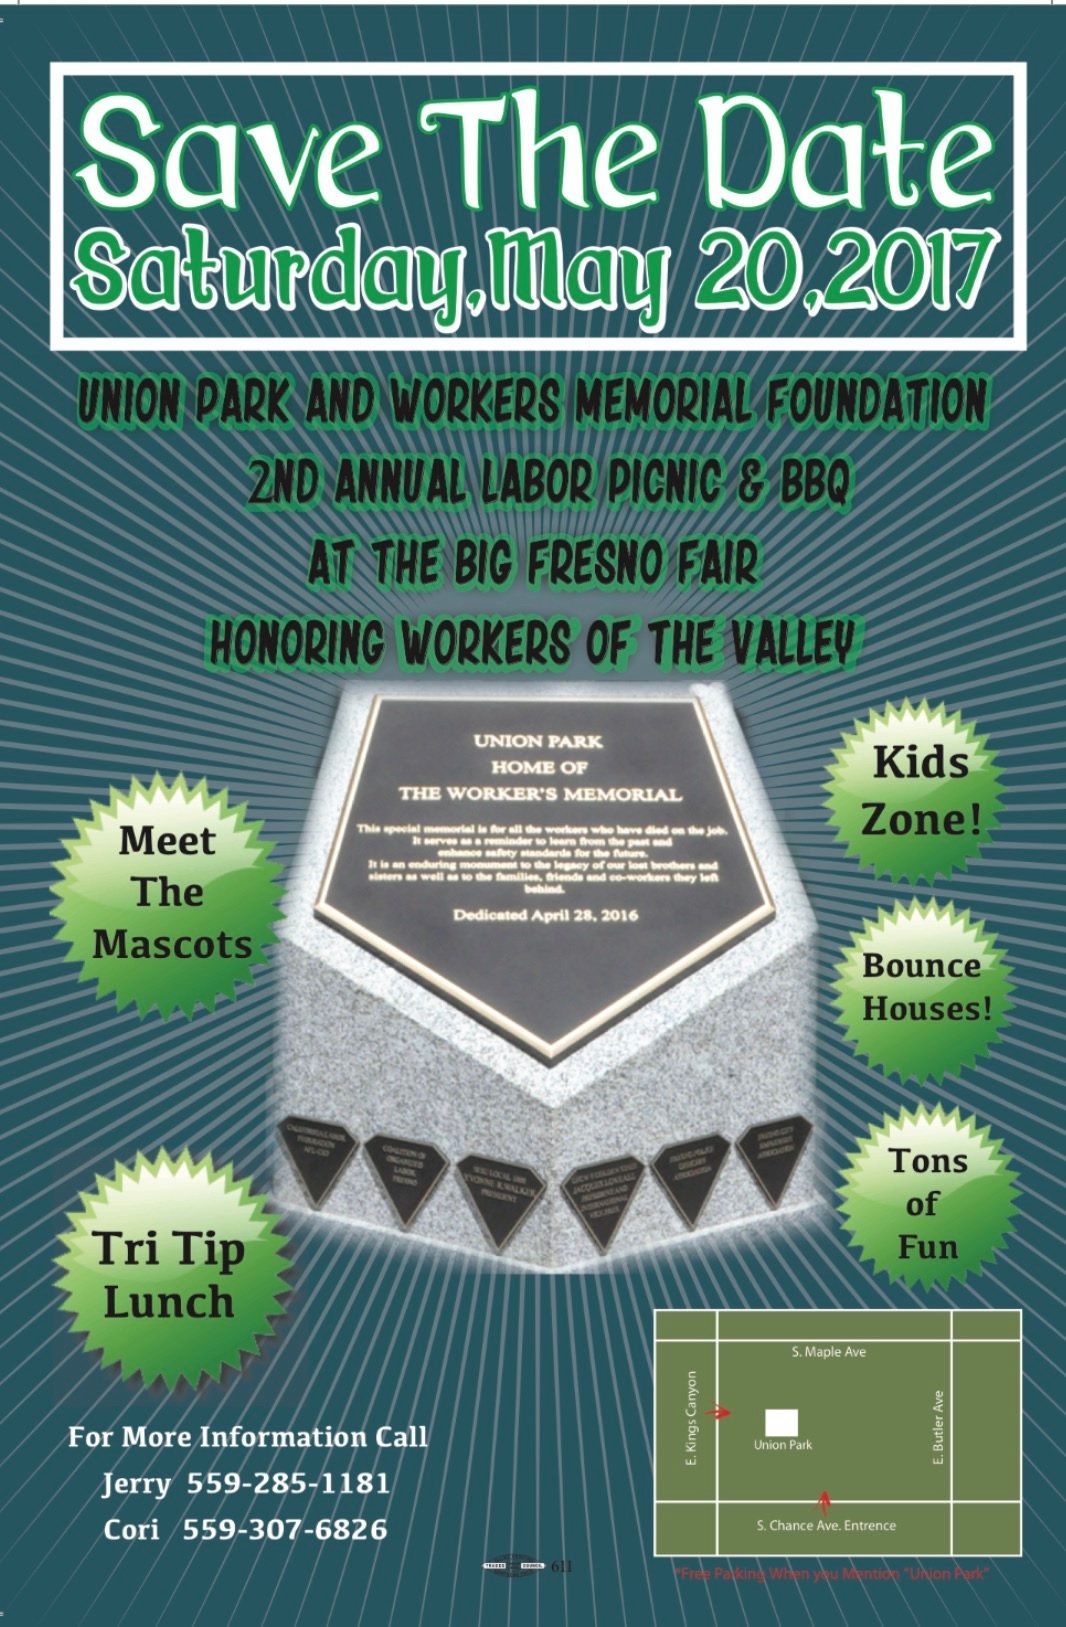 Union Park & Workers Memorial Foundation 2nd Annual Labor Picnic at The Big Fresno Fair